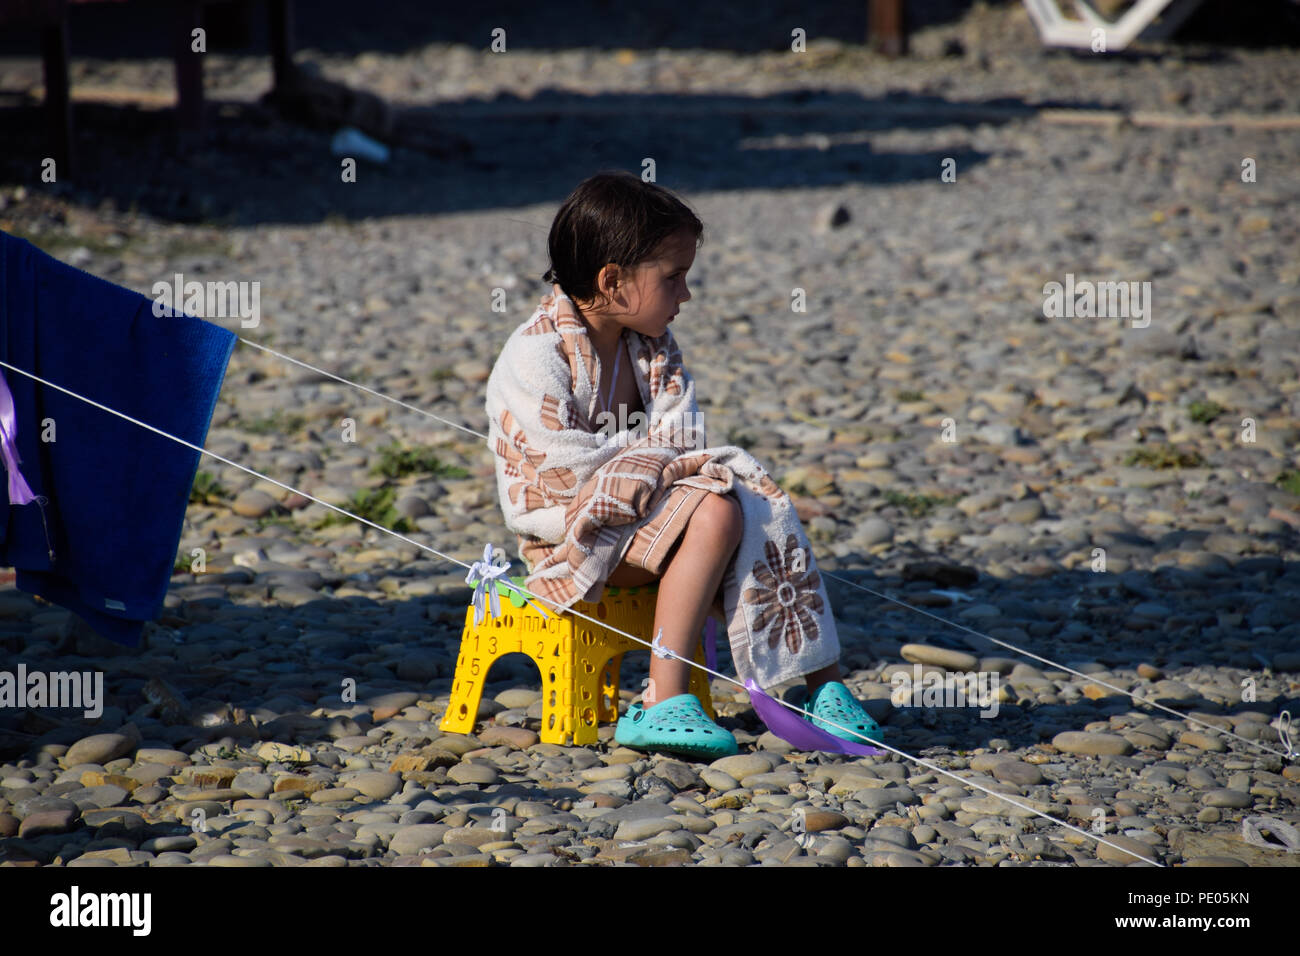 Novorossiysk, Russia - August 06, 2018: The girl sits on a chair near a tent wrapped in a blanket. Stock Photo